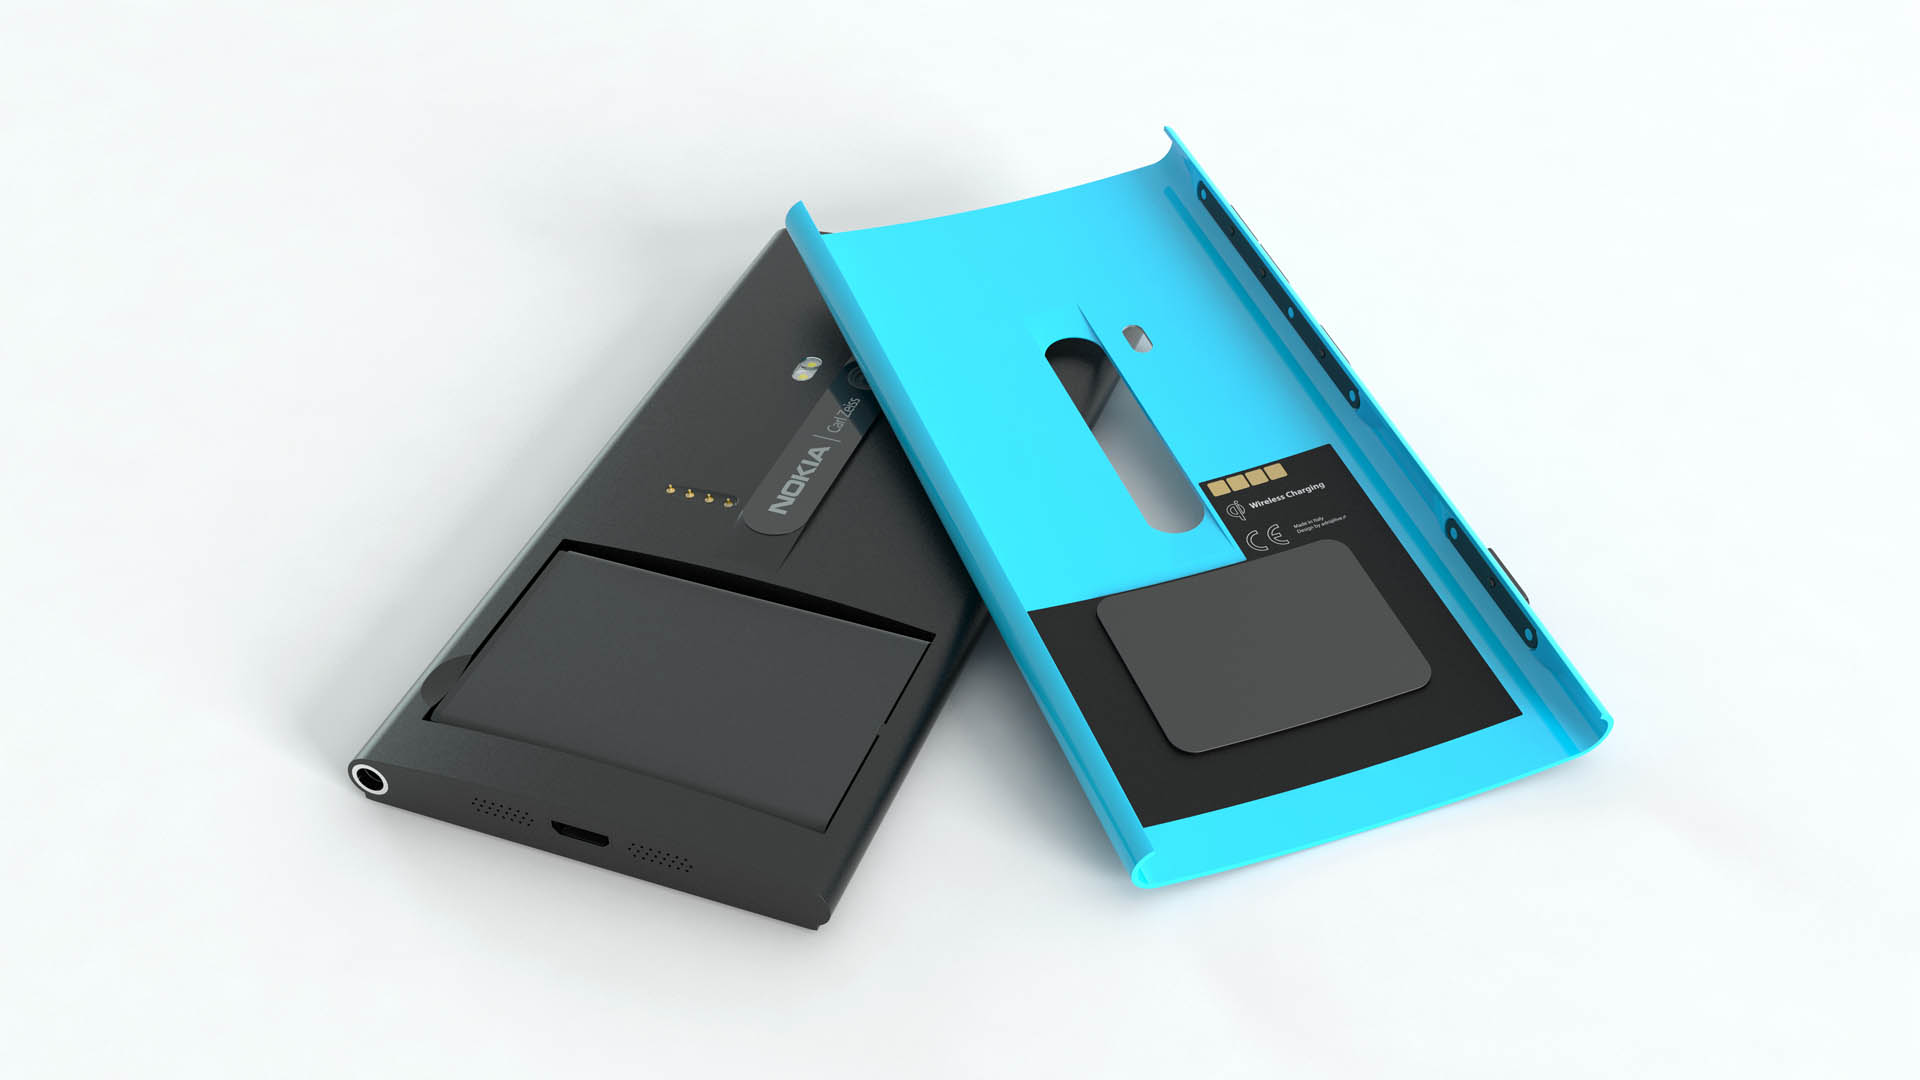 Nokia Lumia 880 battery